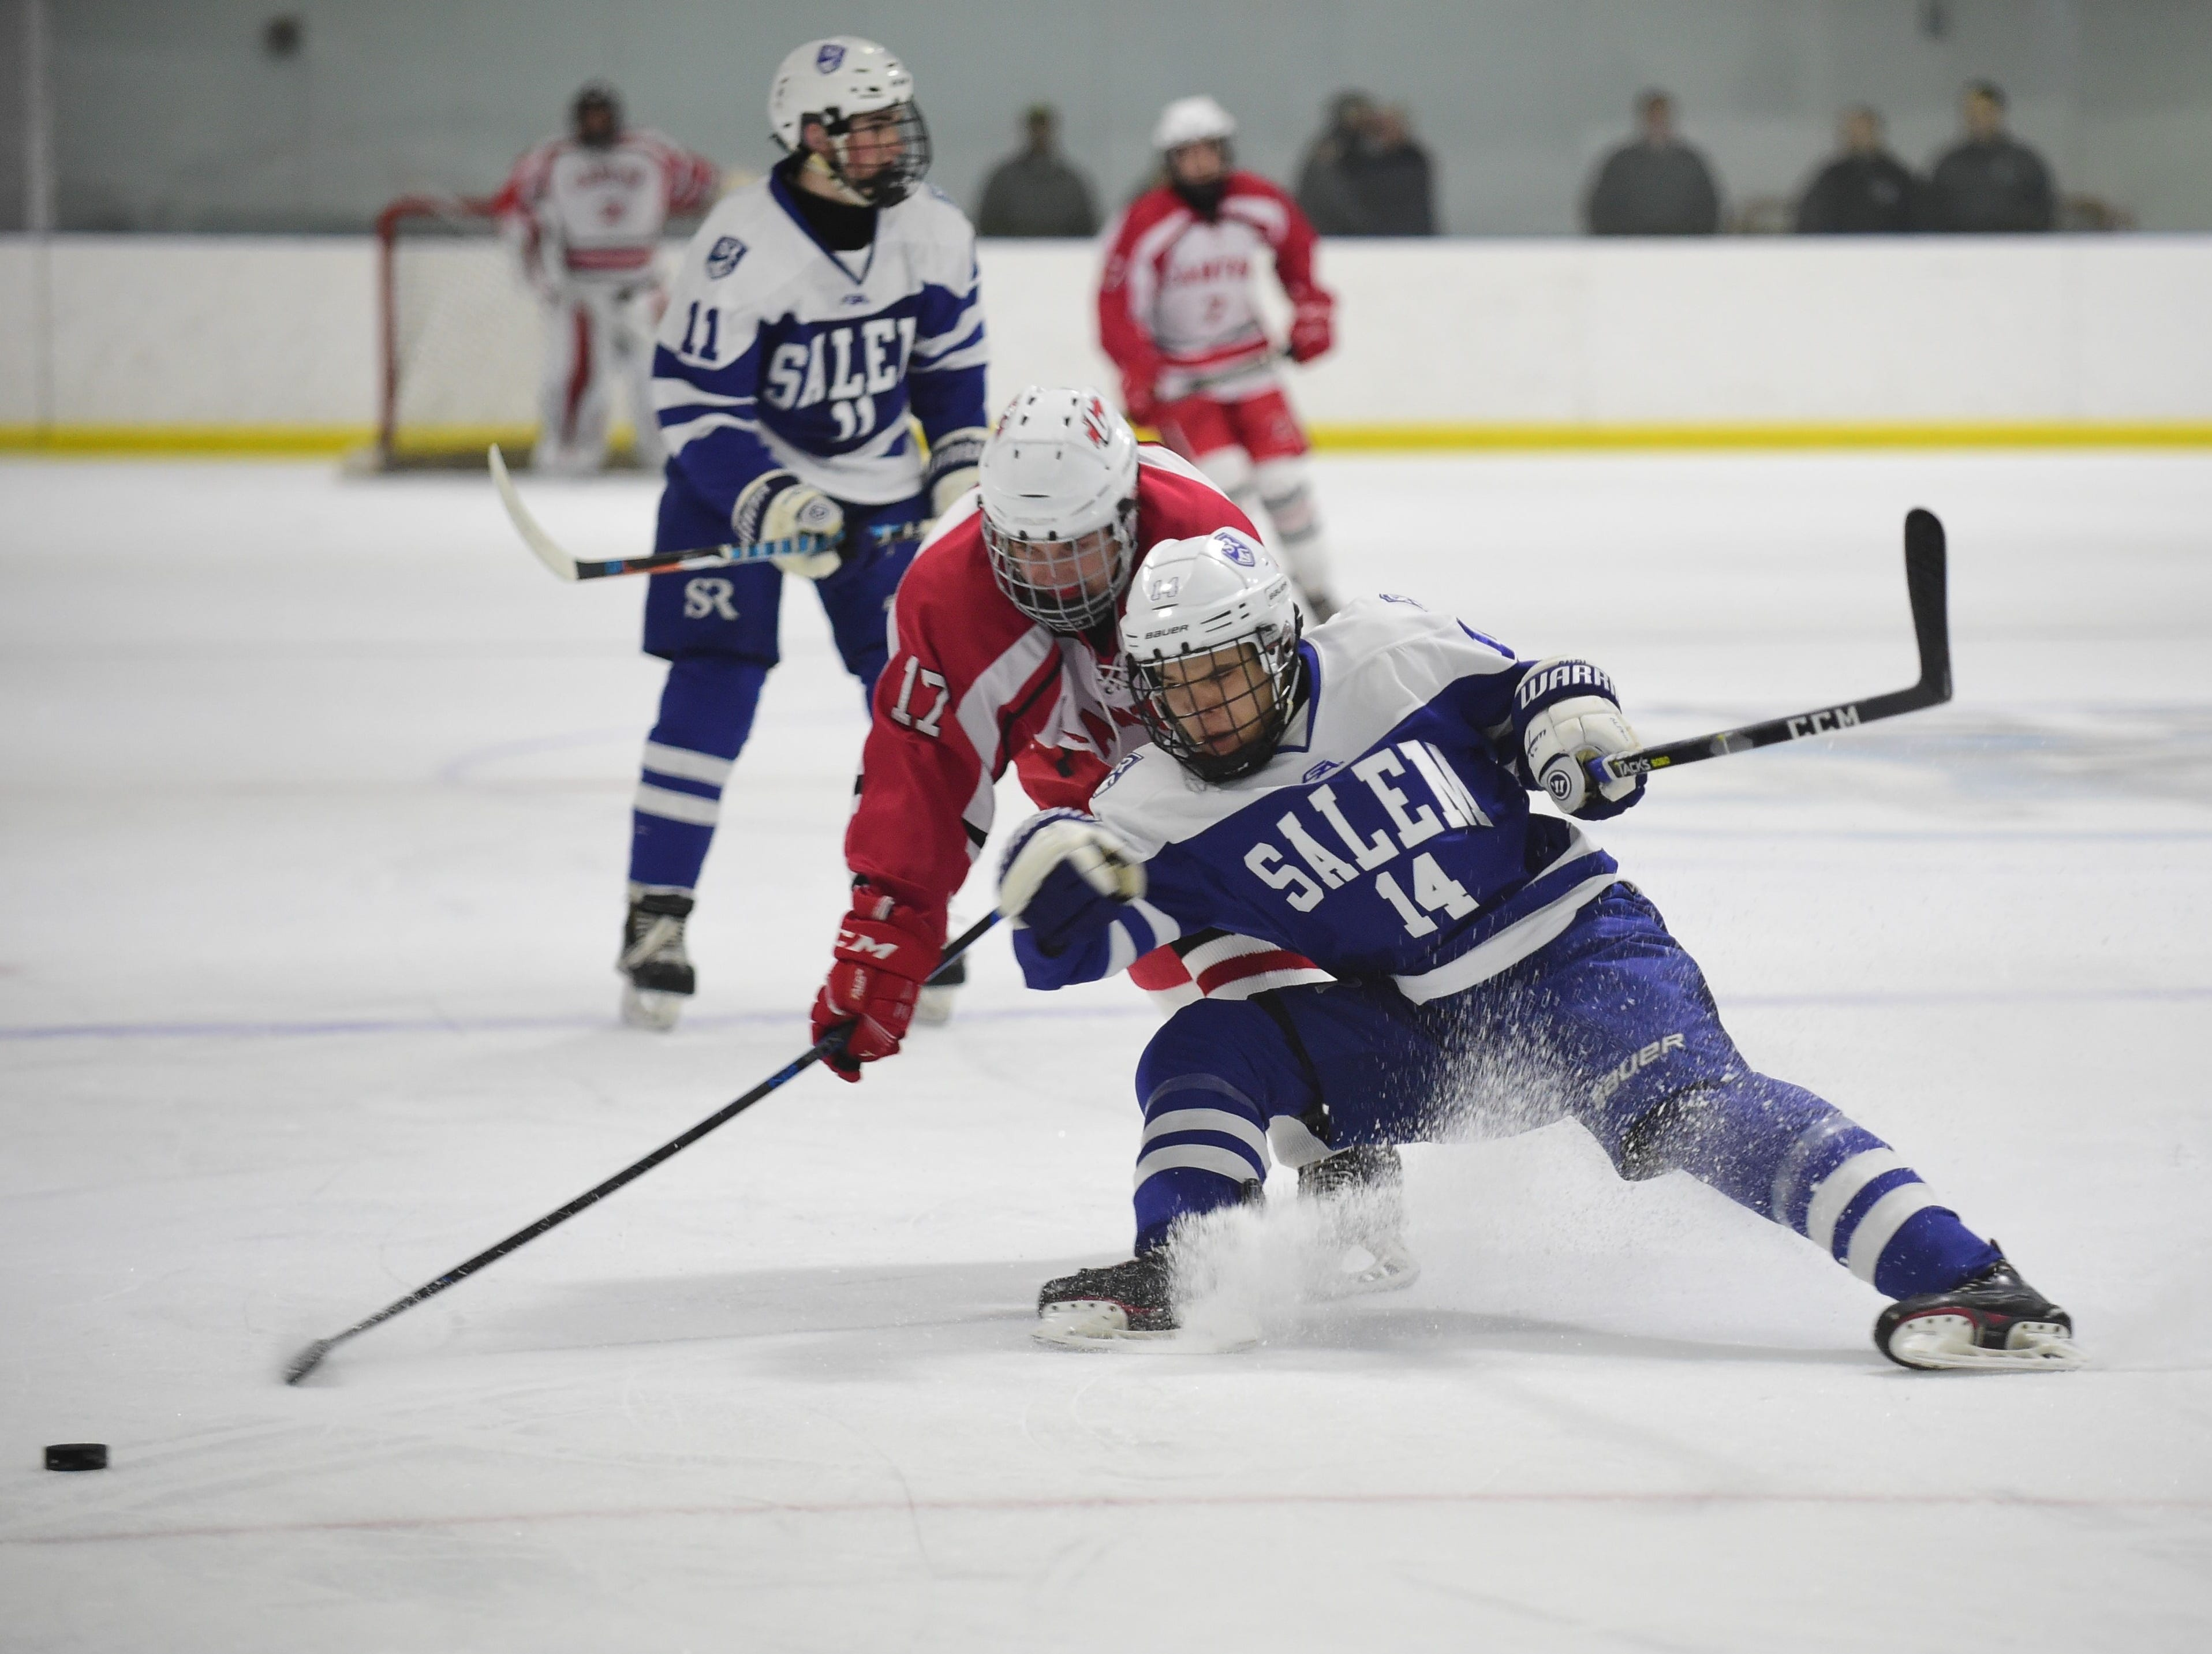 Salem's Nick Brosky (14) battles with Canton's Declan O'Hare (17) for a puck in the neutral zone.